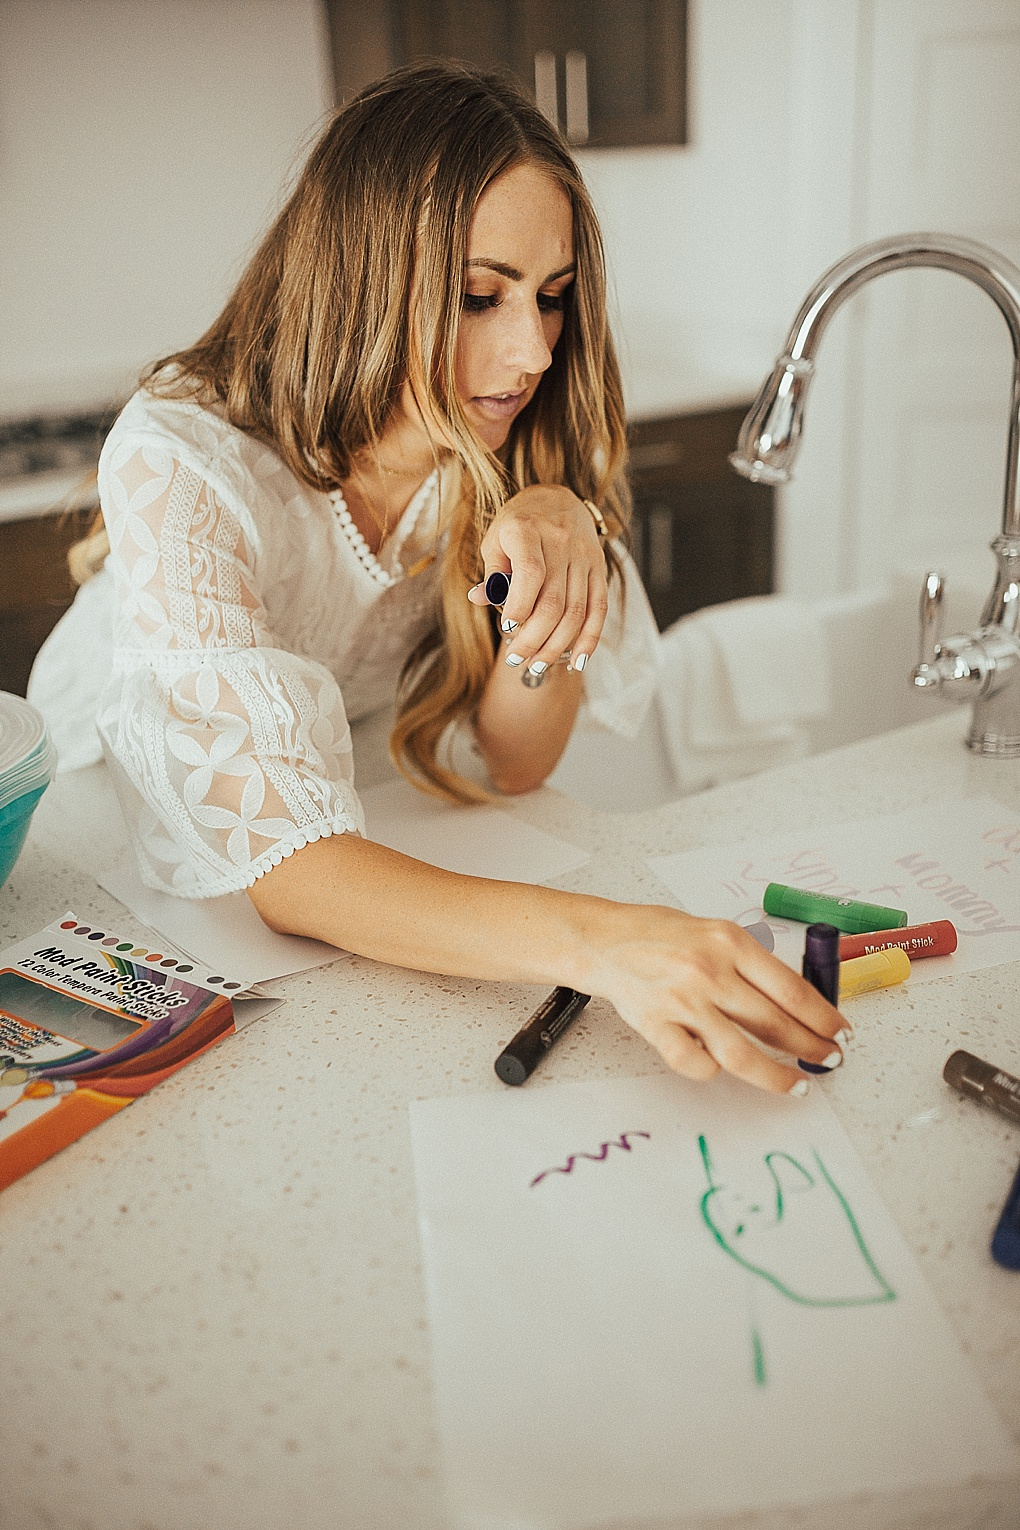 Using Paint Sticks & My Efforts to Trying to Say Yes More. by Utah lifestyle blogger Dani Marie